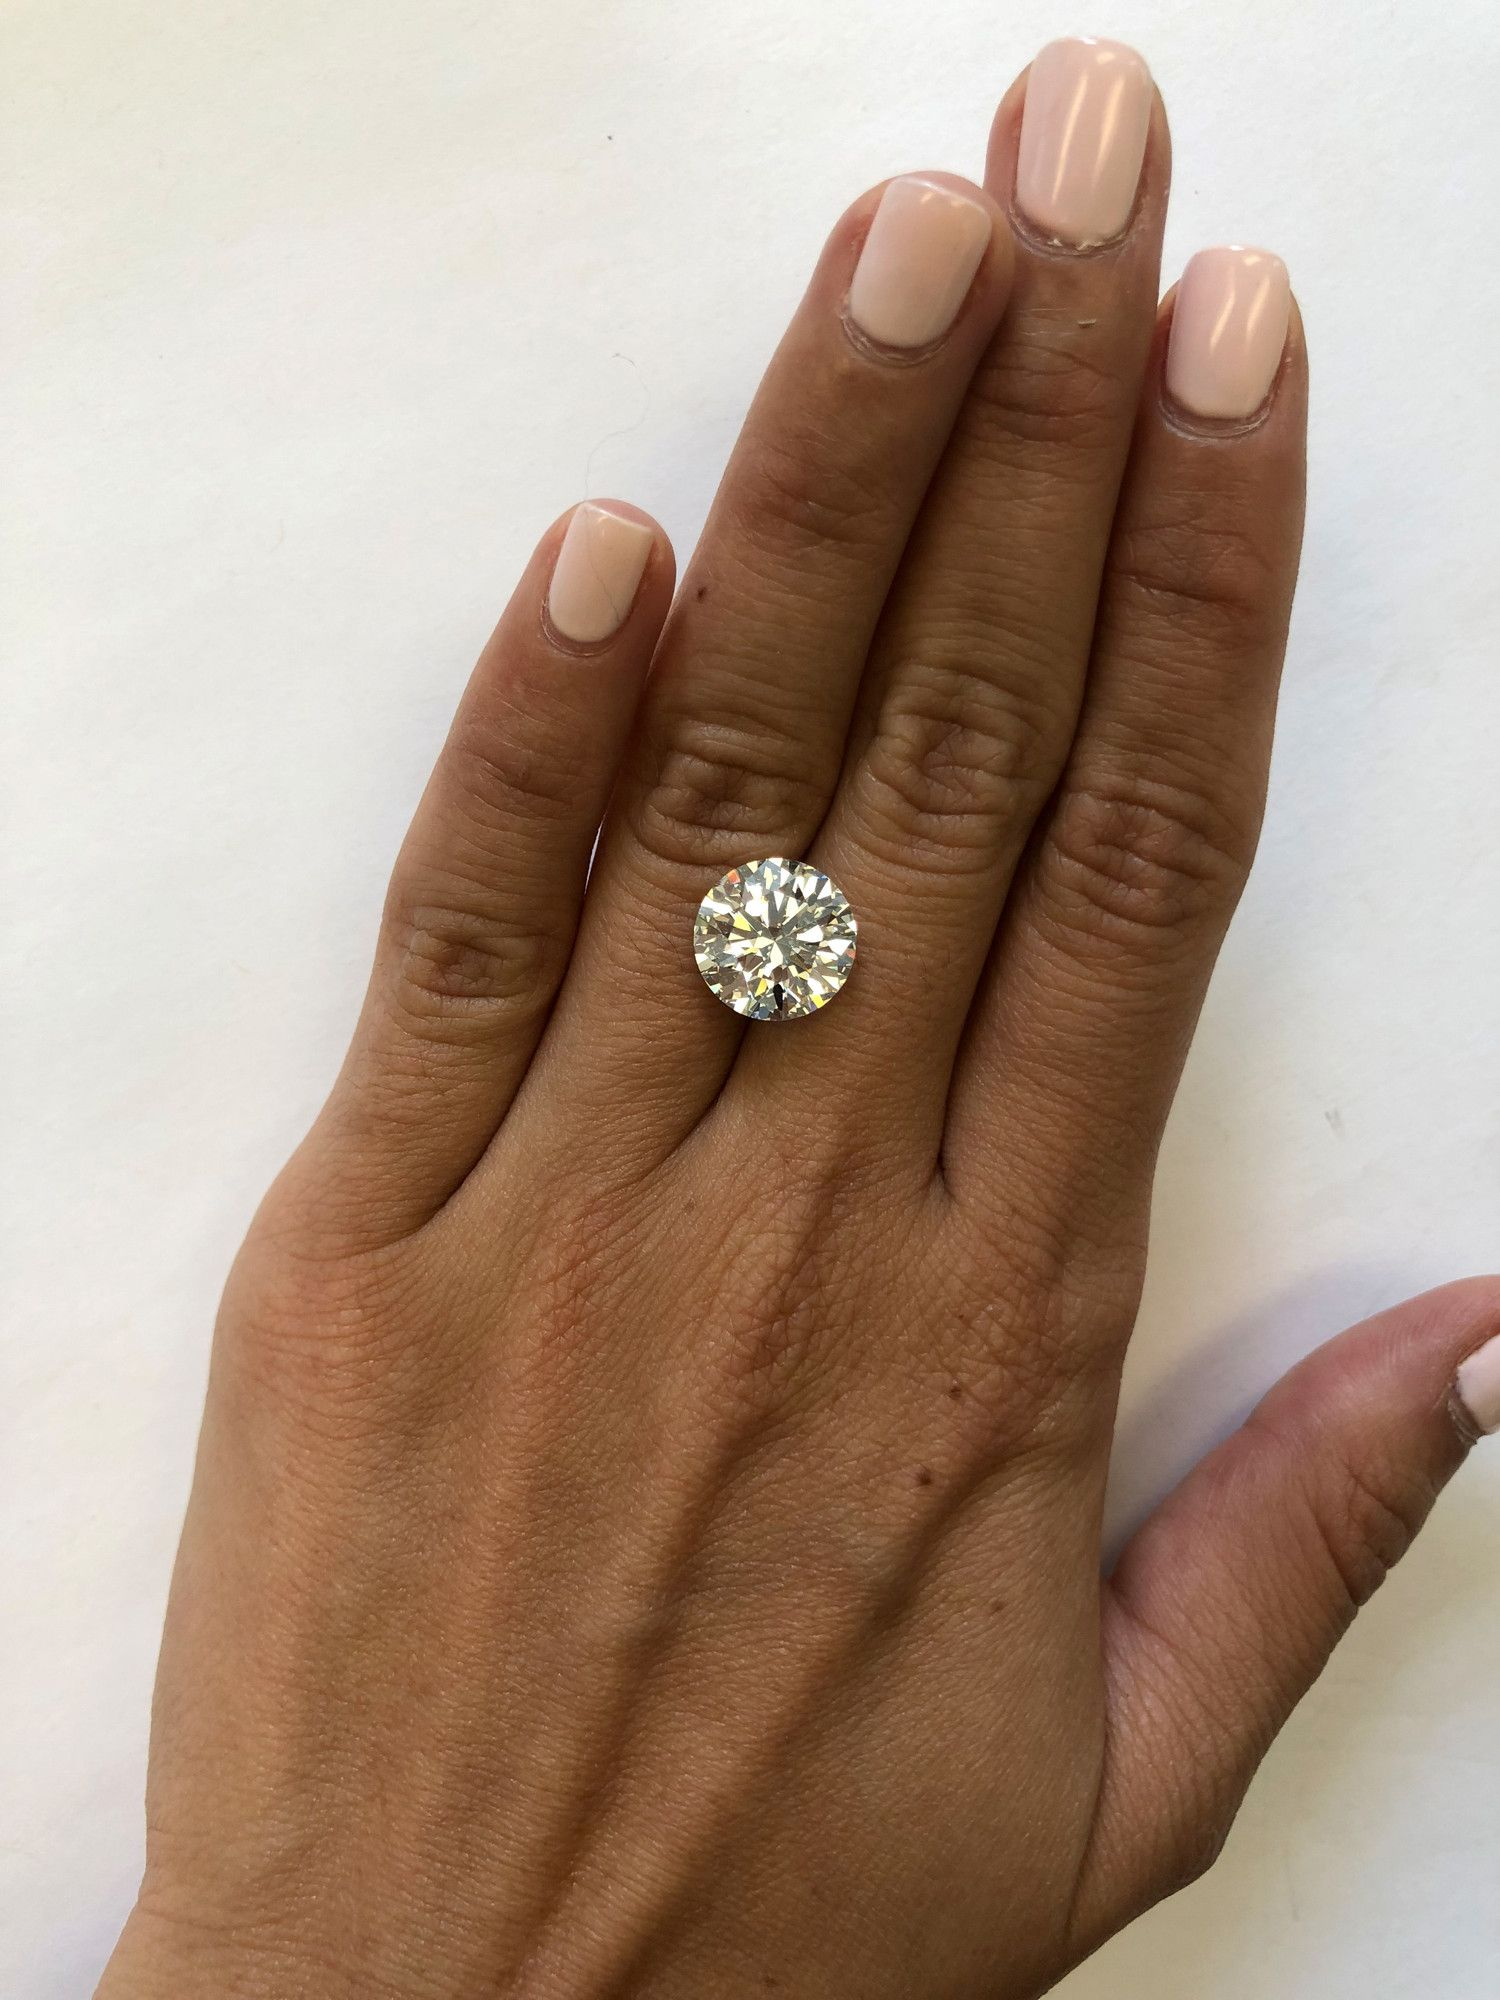 This Is What A Diamond Looks Like At Every Size From 5 Carats To 10 Diamond Rings Carat Diamond Carat Size 5 Carat Diamond Ring